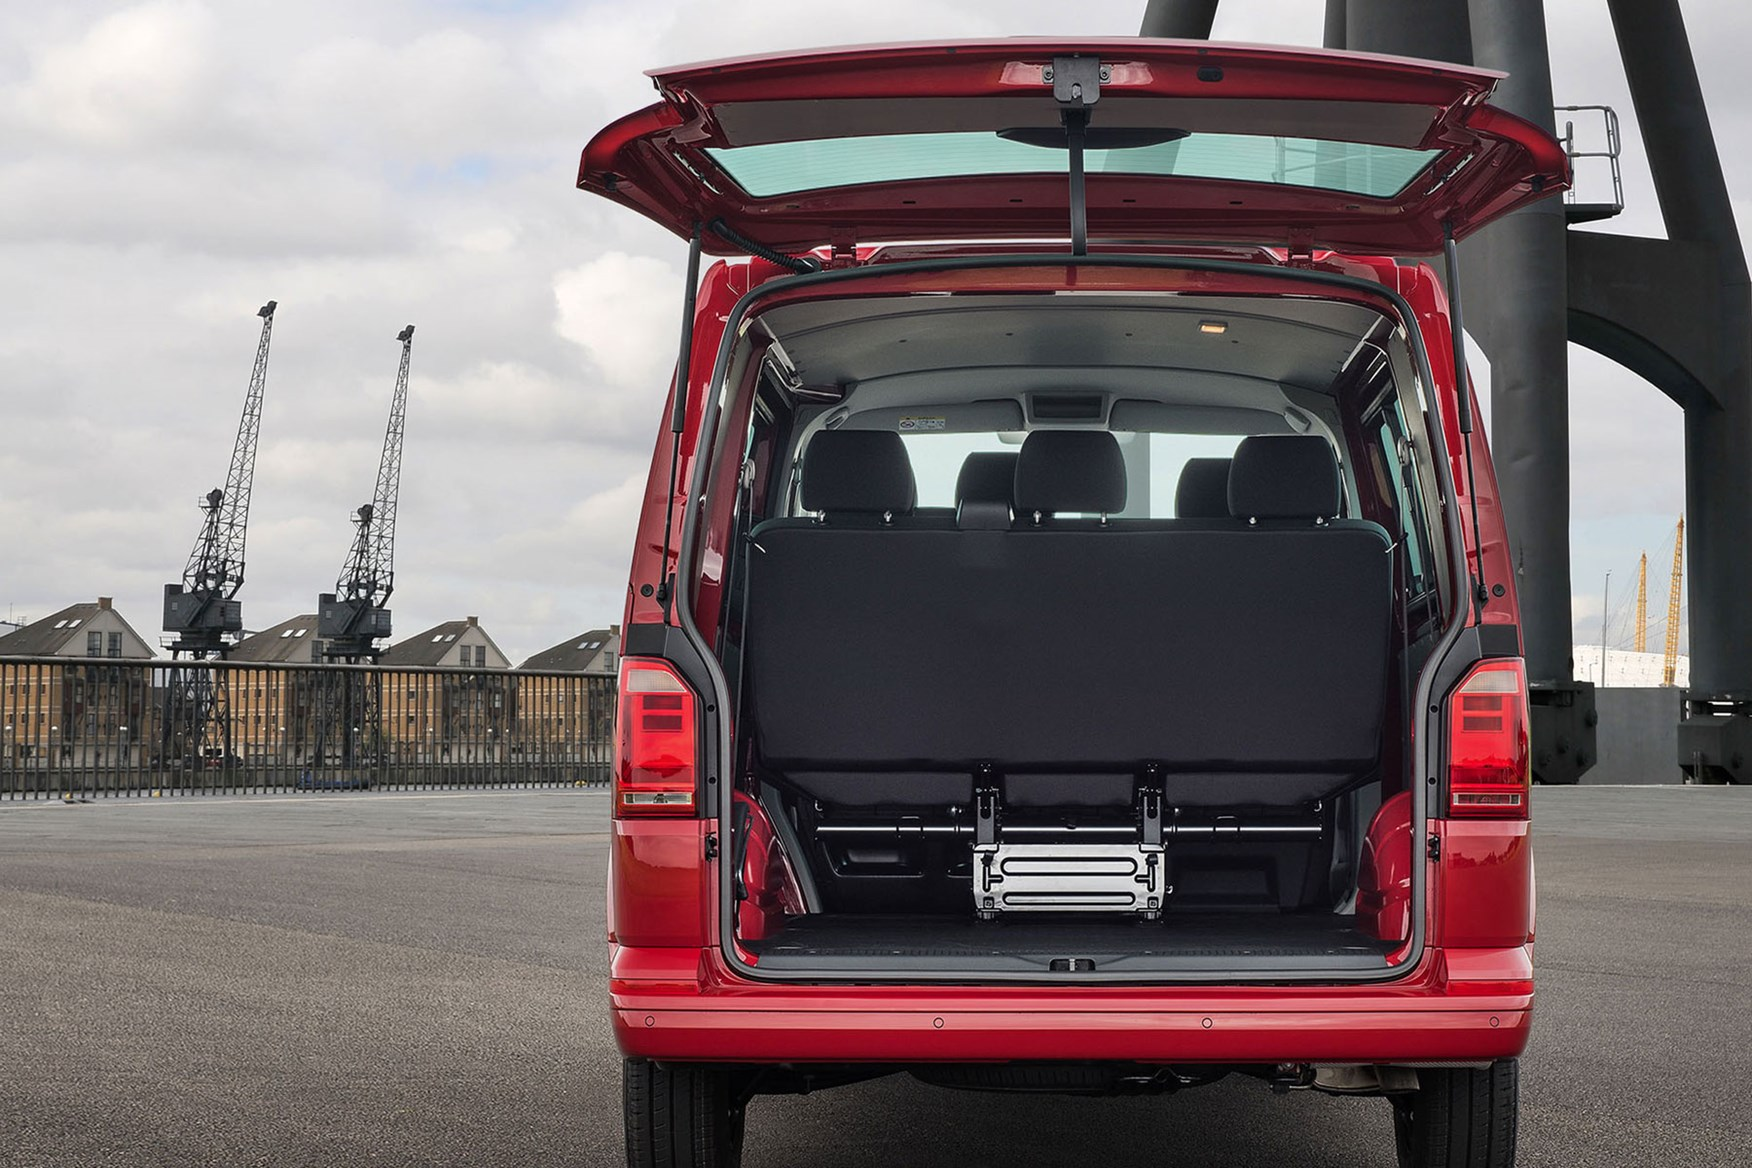 VW Transporter T6 kombi load area with rear seats in place, tailgate, red